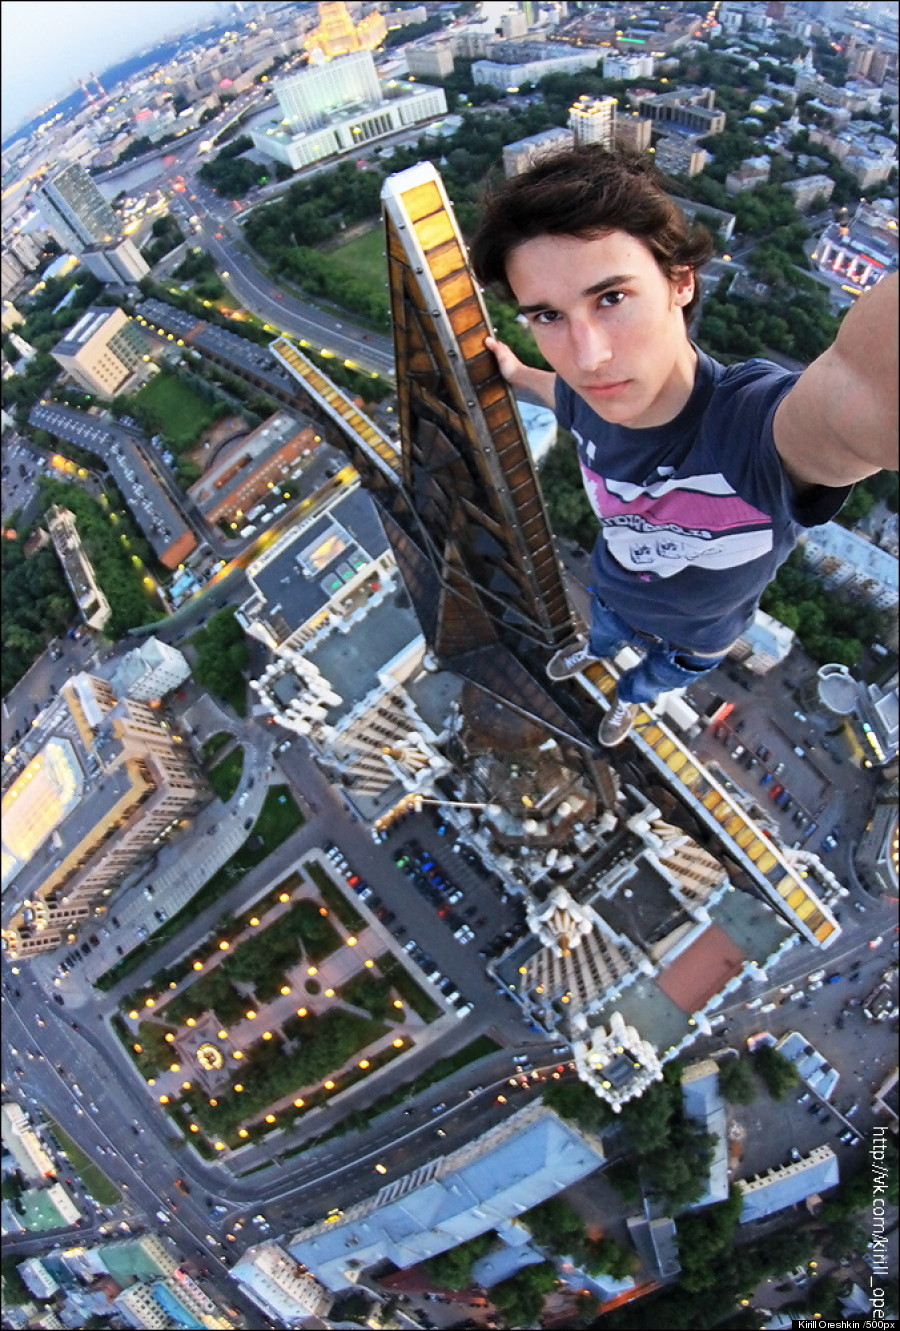 Selfies That Are Way Better Than Any Of Yours CollegeTimescom - Guy takes epic selfie top christ redeemer statue brazil